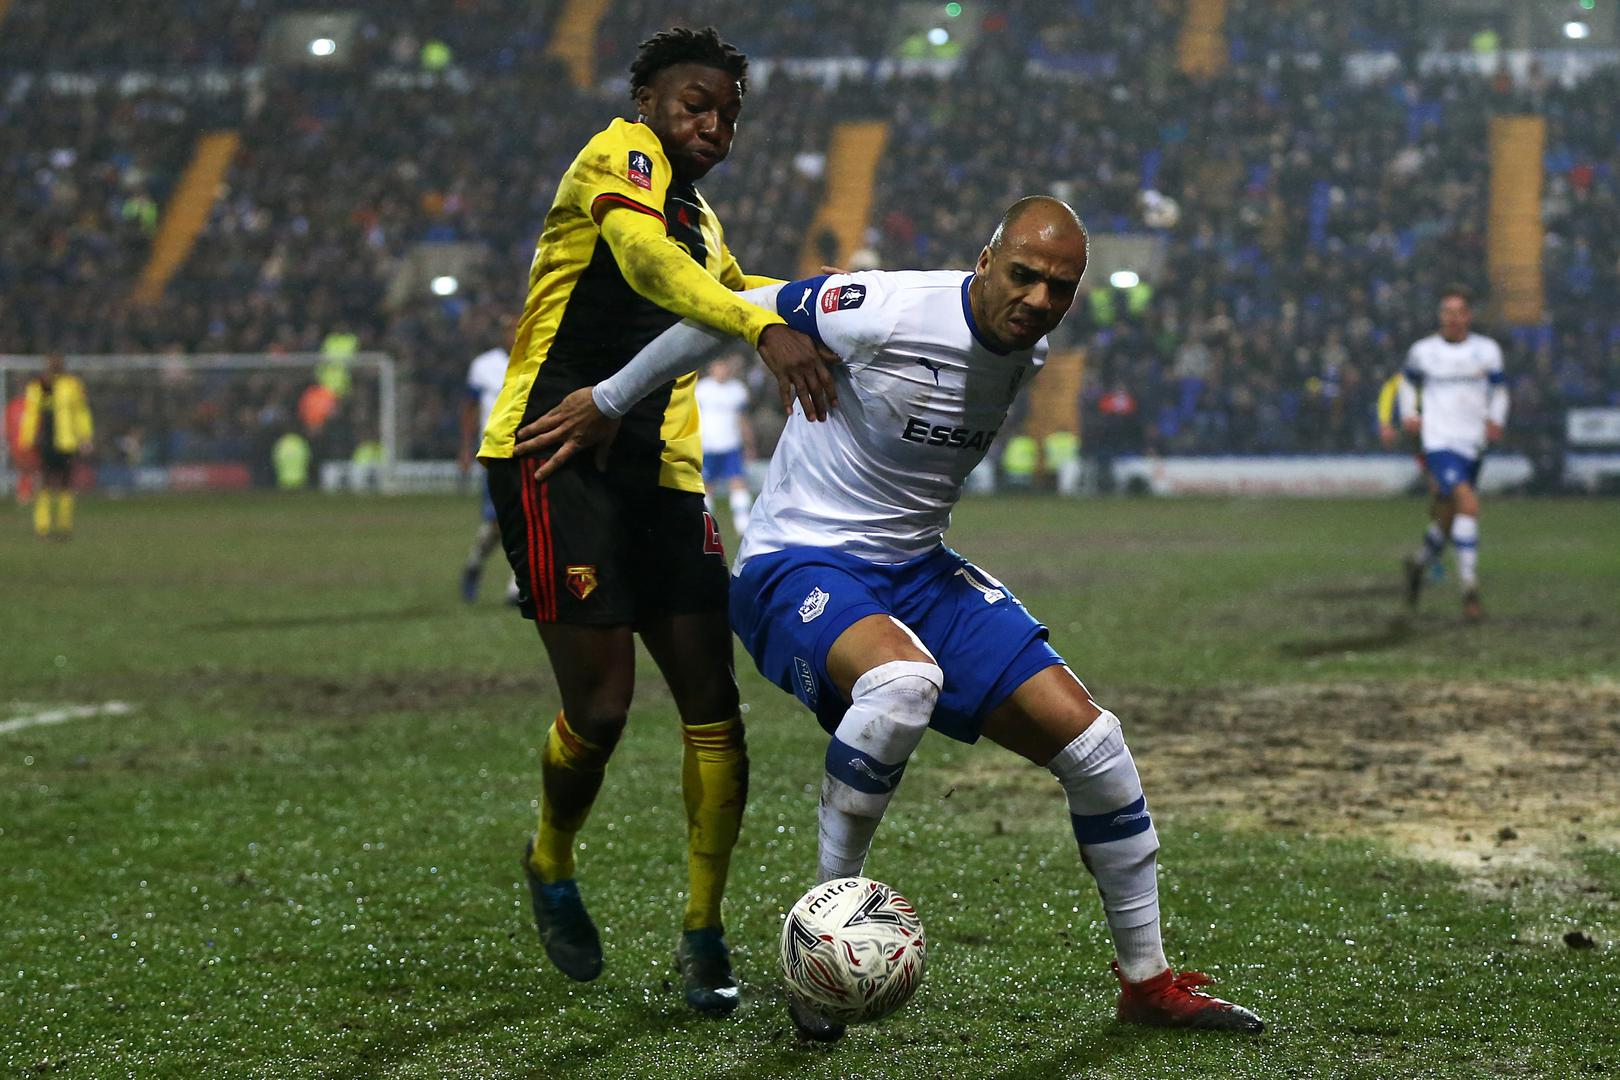 A Tranmere Rovers player holds off a Watford opponent during the FA Cup.